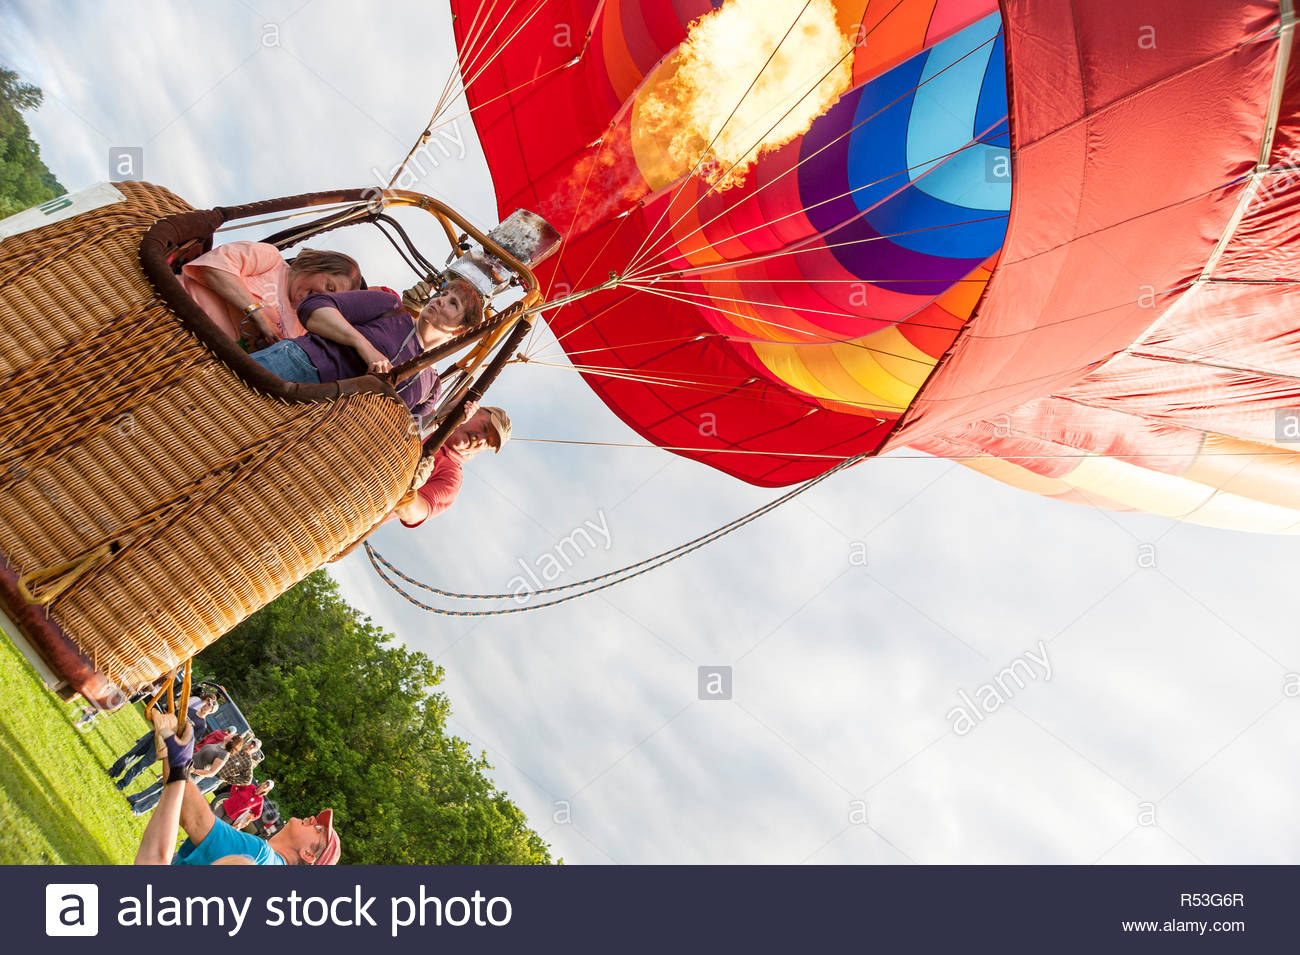 Quechee, Vermont, USA - June 19, 2009: Hot air balloon lifts off at the Quechee Hot Air Balloon Craft and Music Festival Stock Photo